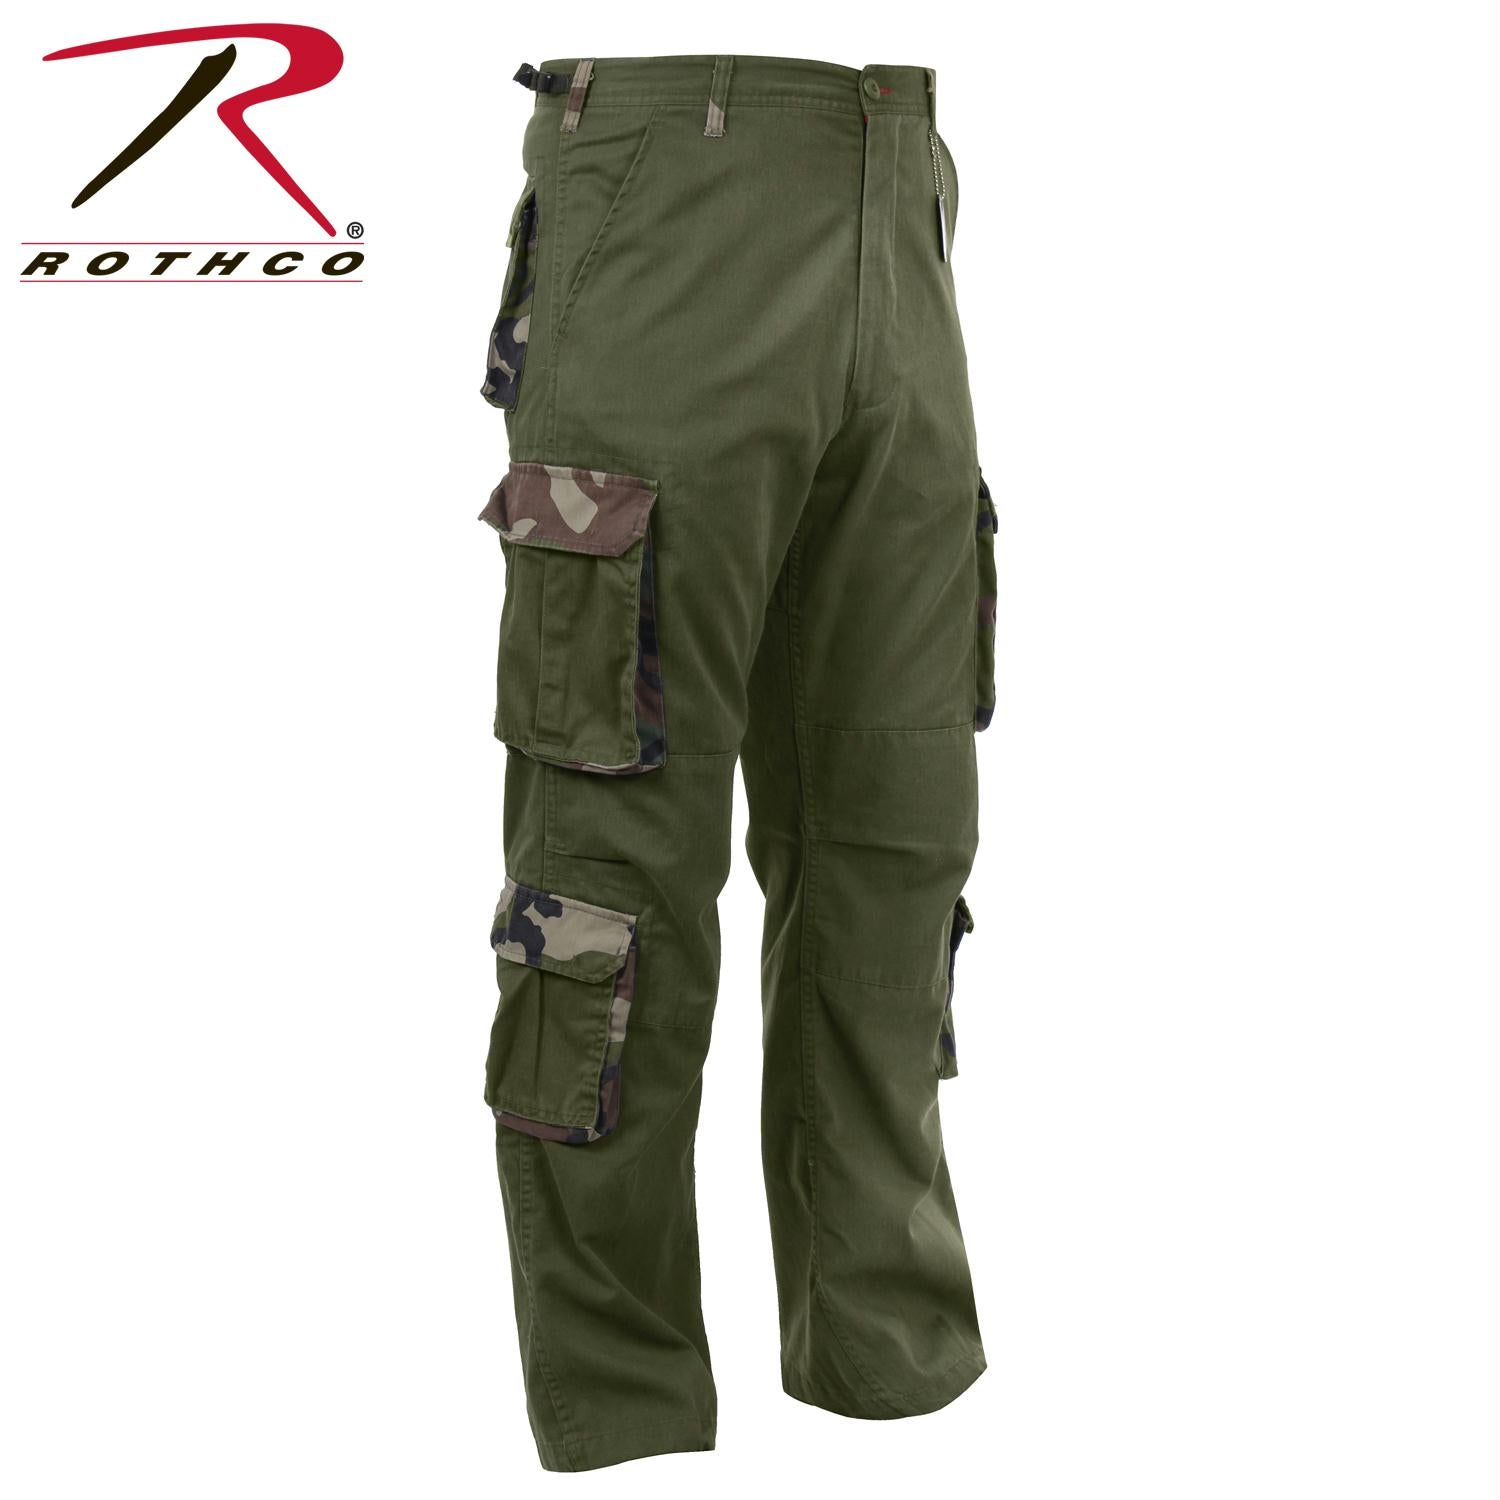 Rothco Vintage Accent Paratrooper Fatigues - Olive Drab / L